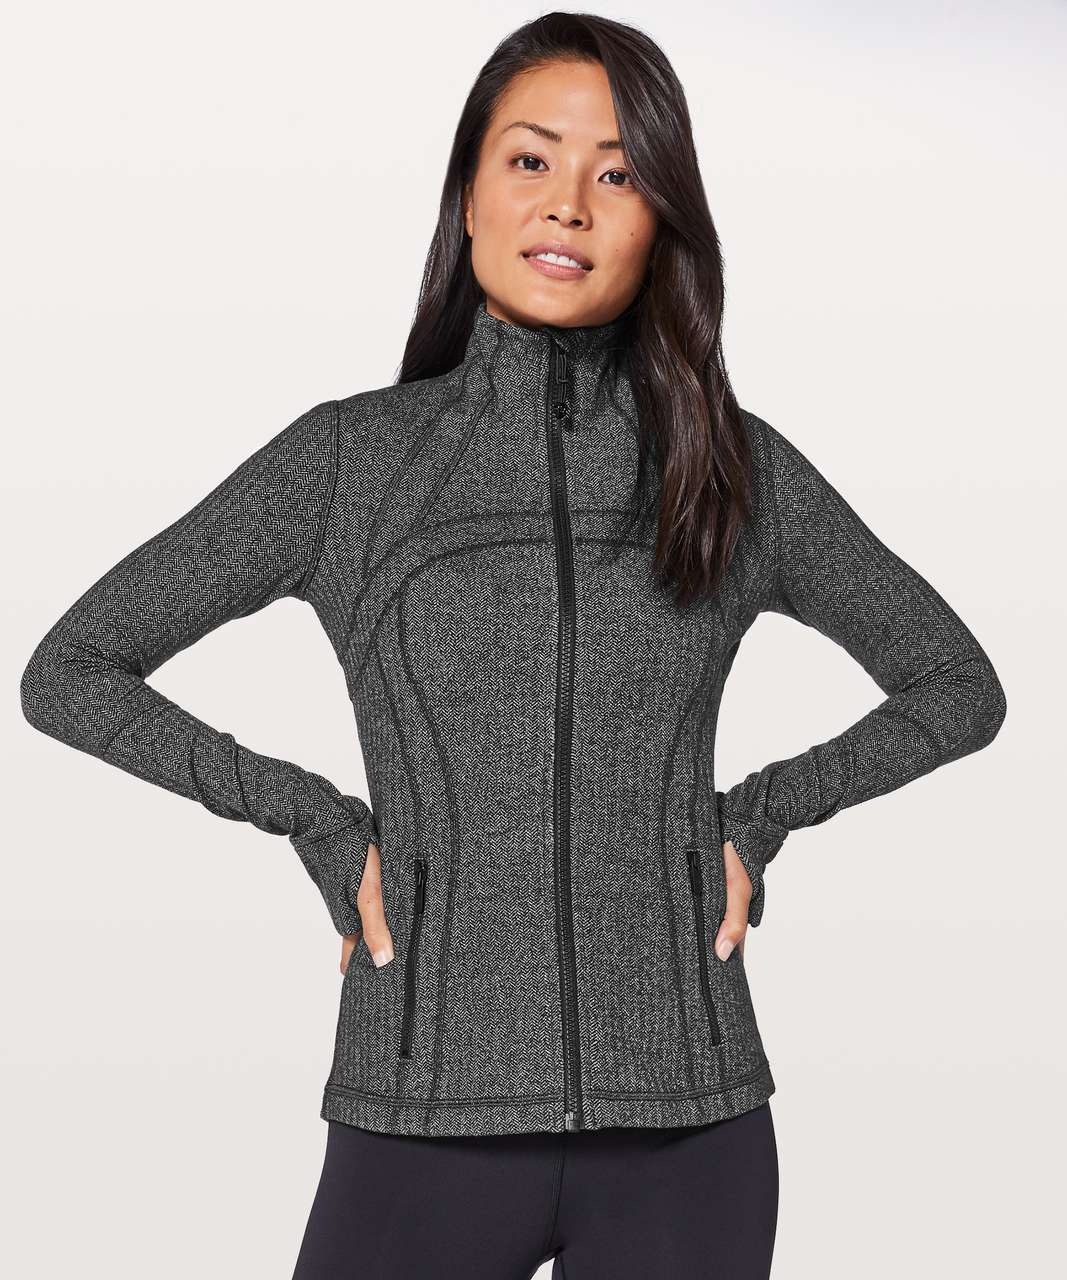 Lululemon Define Jacket - Heathered Herringbone Heathered Black Black